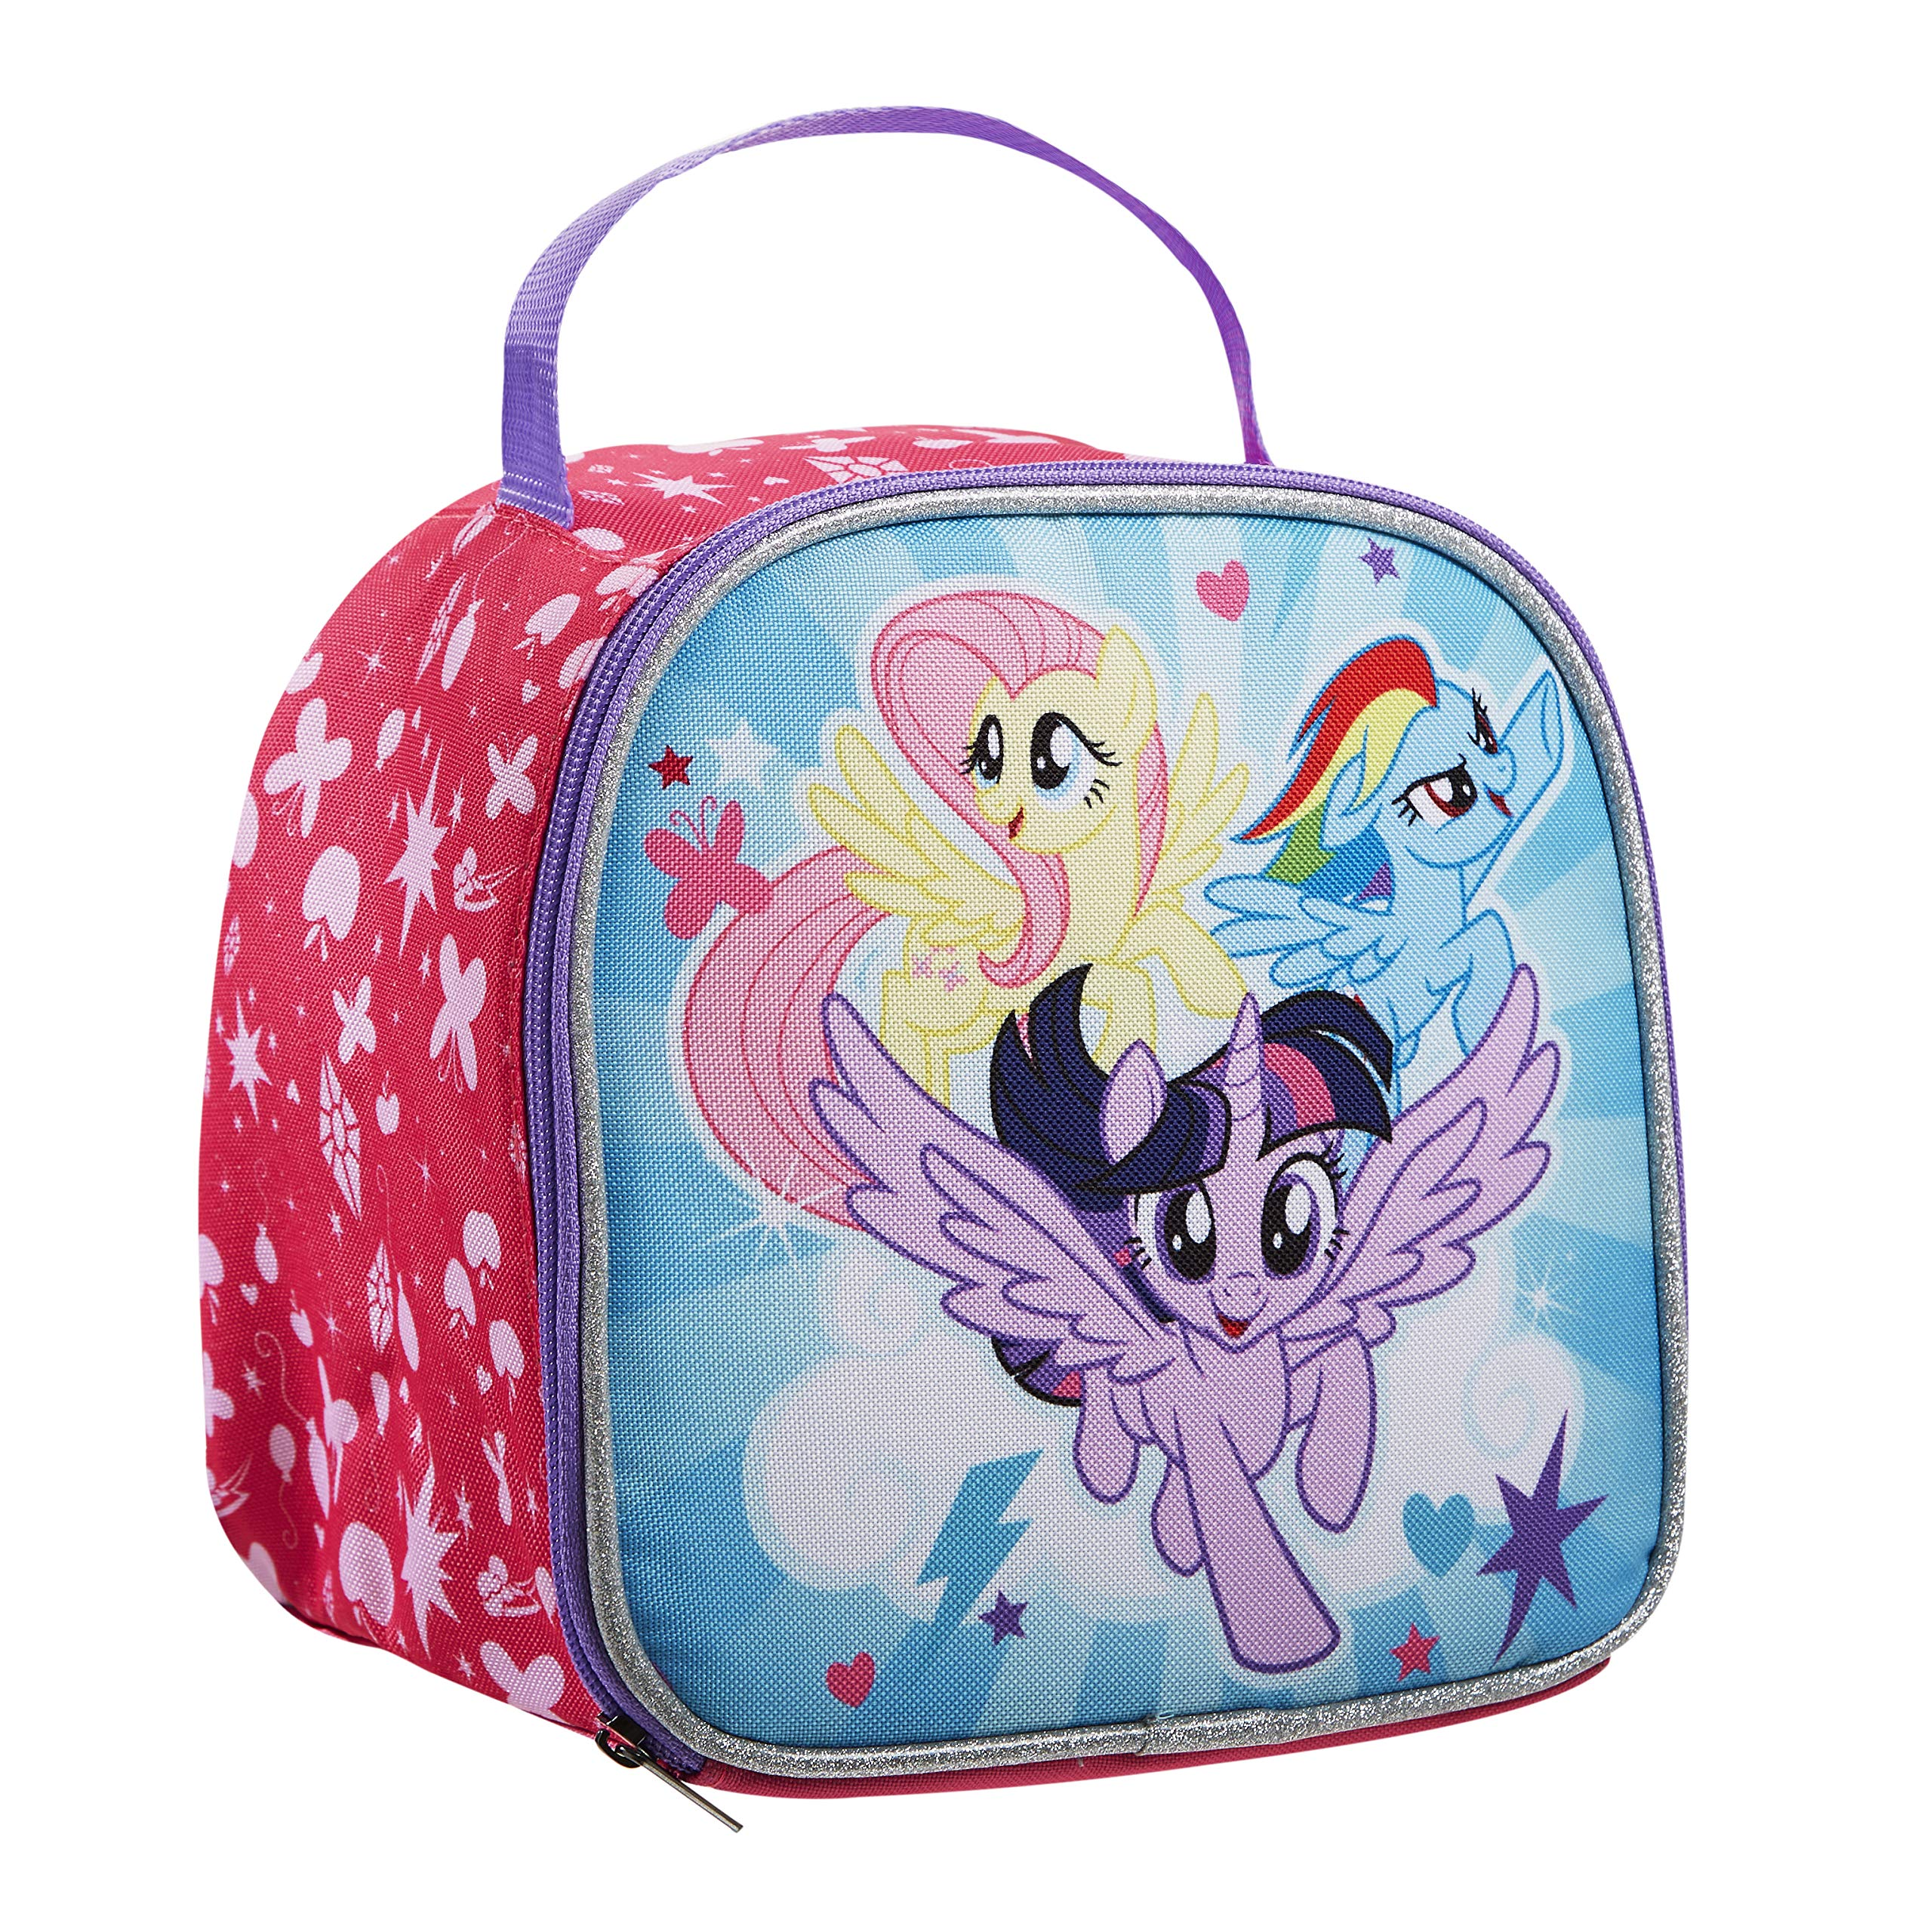 Fit & Fresh Kids' Aubrey Insulated Lunch Bag with Glitter Ice Pack and Full Zip Closure, Versatile School Lunch Box, My Little Pony